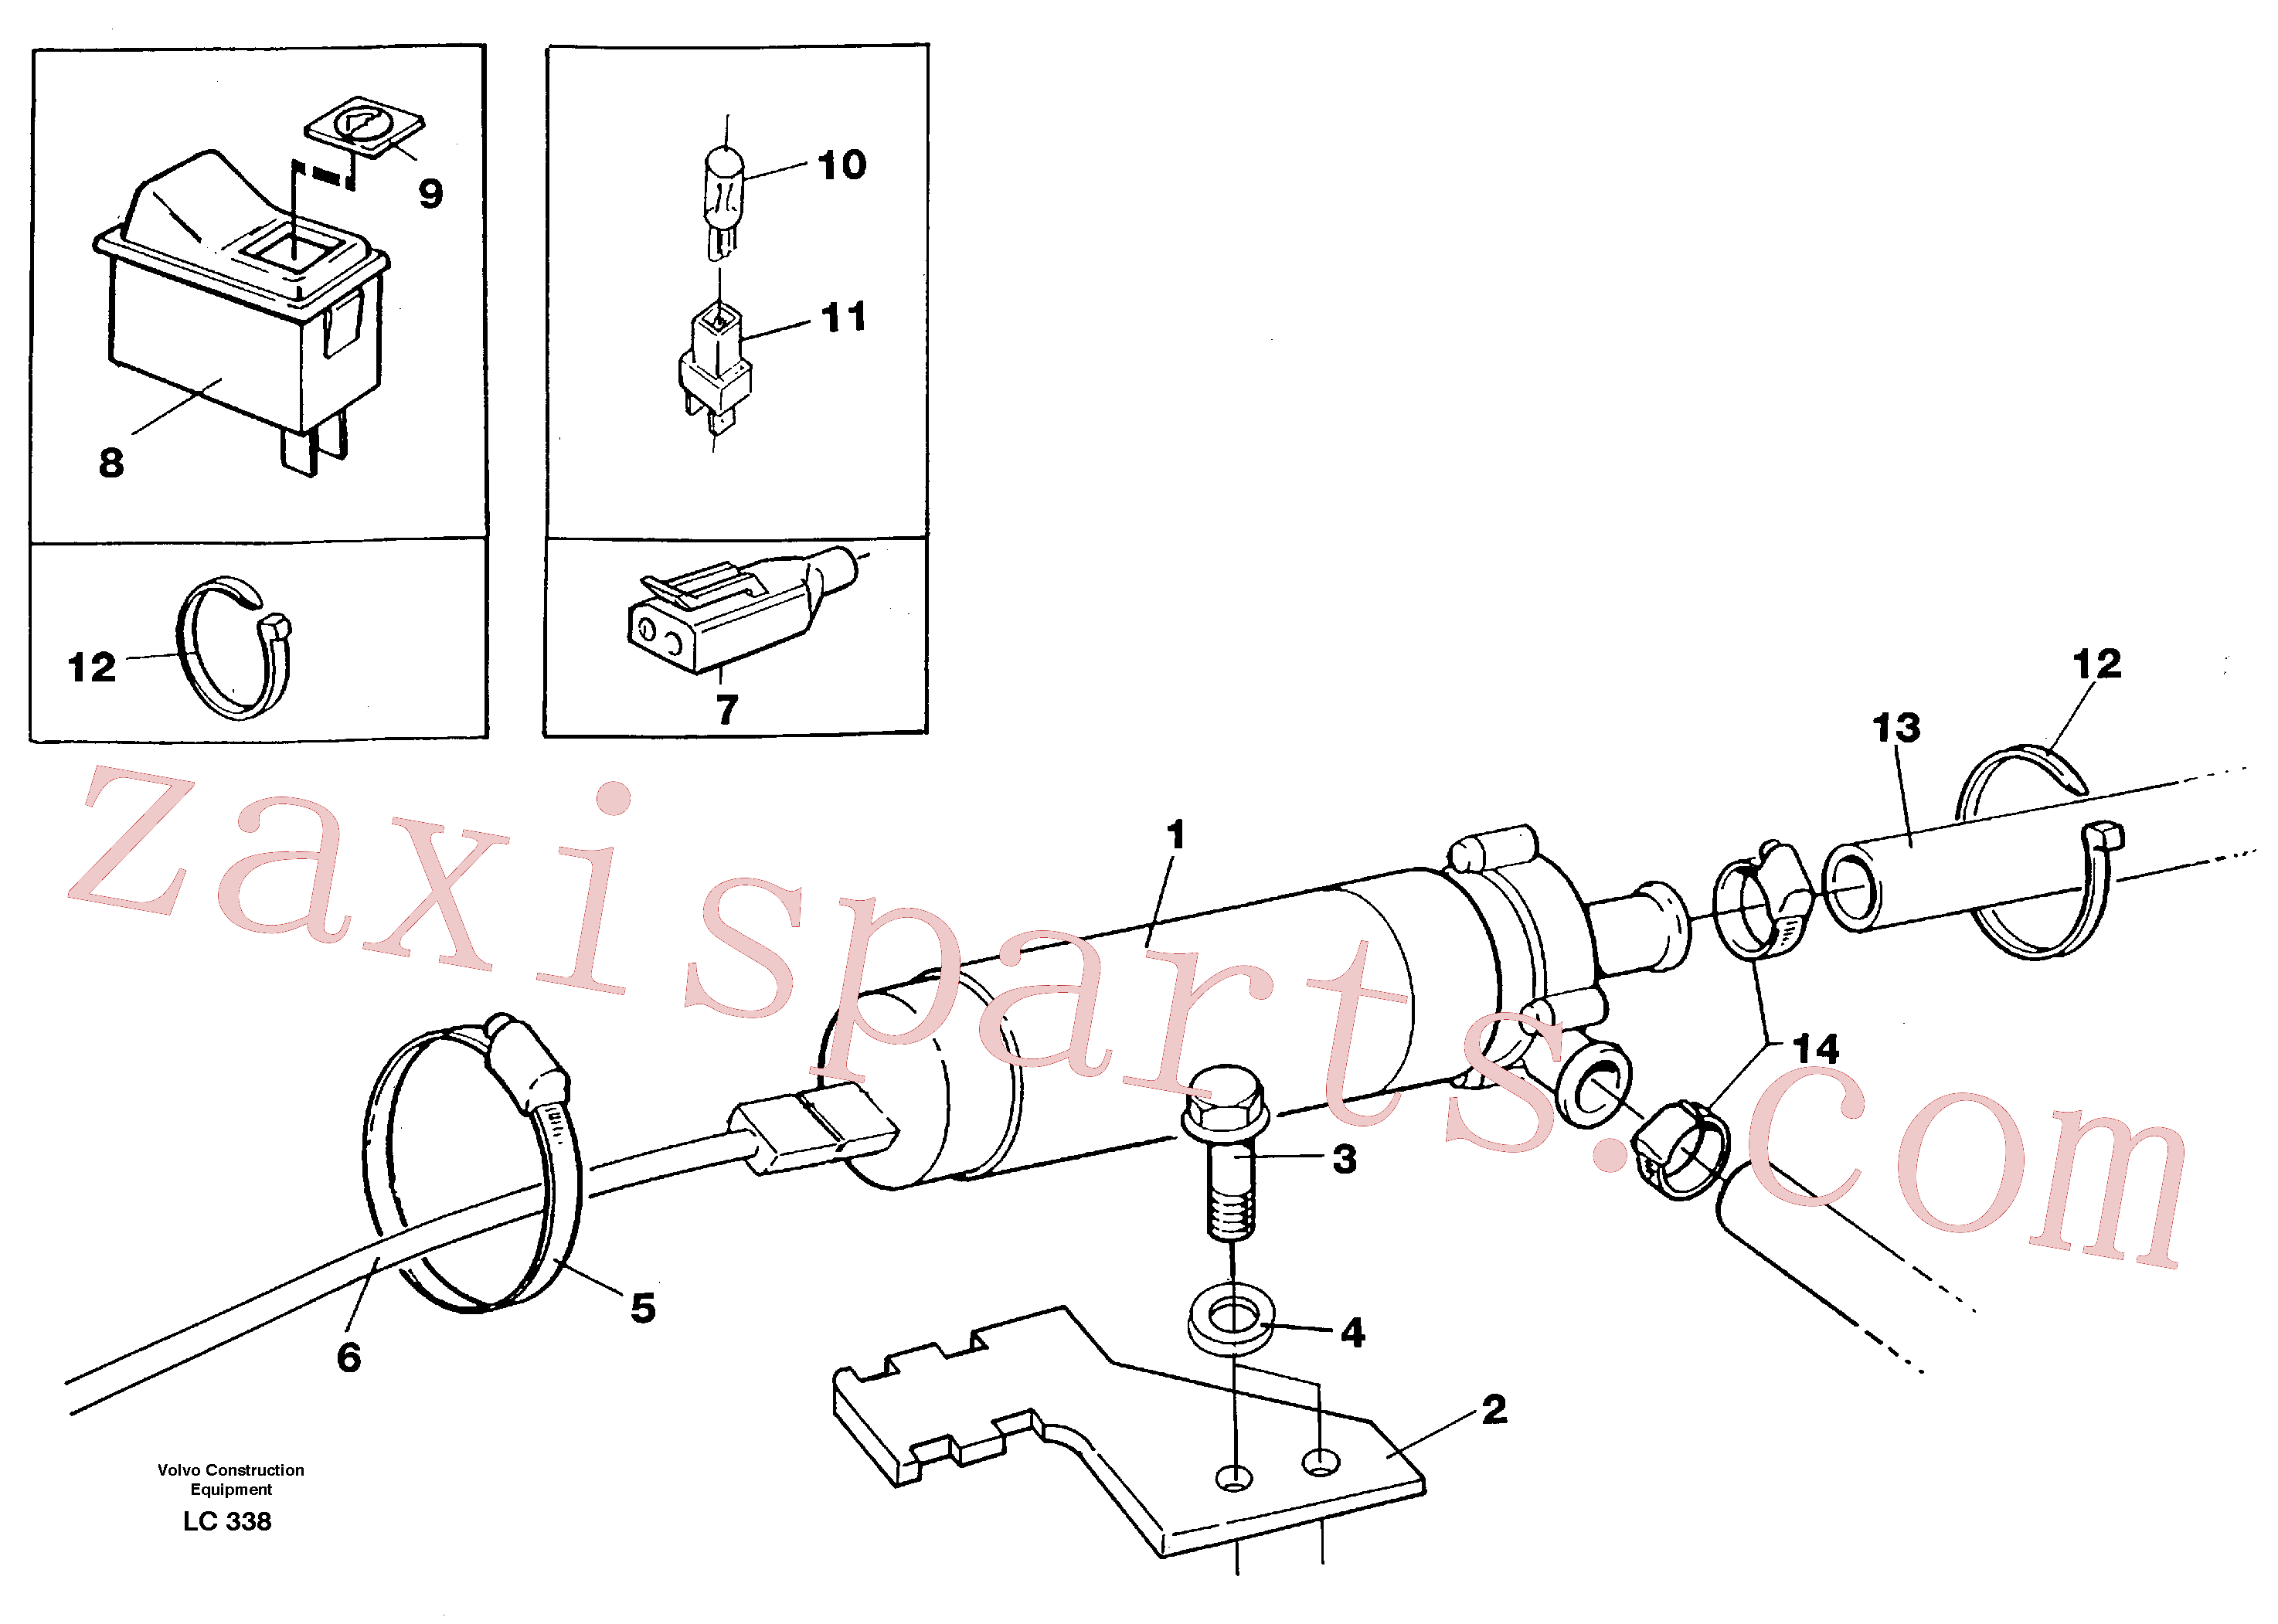 VOE976945 for Volvo Cirkulation pump(LC338 assembly)